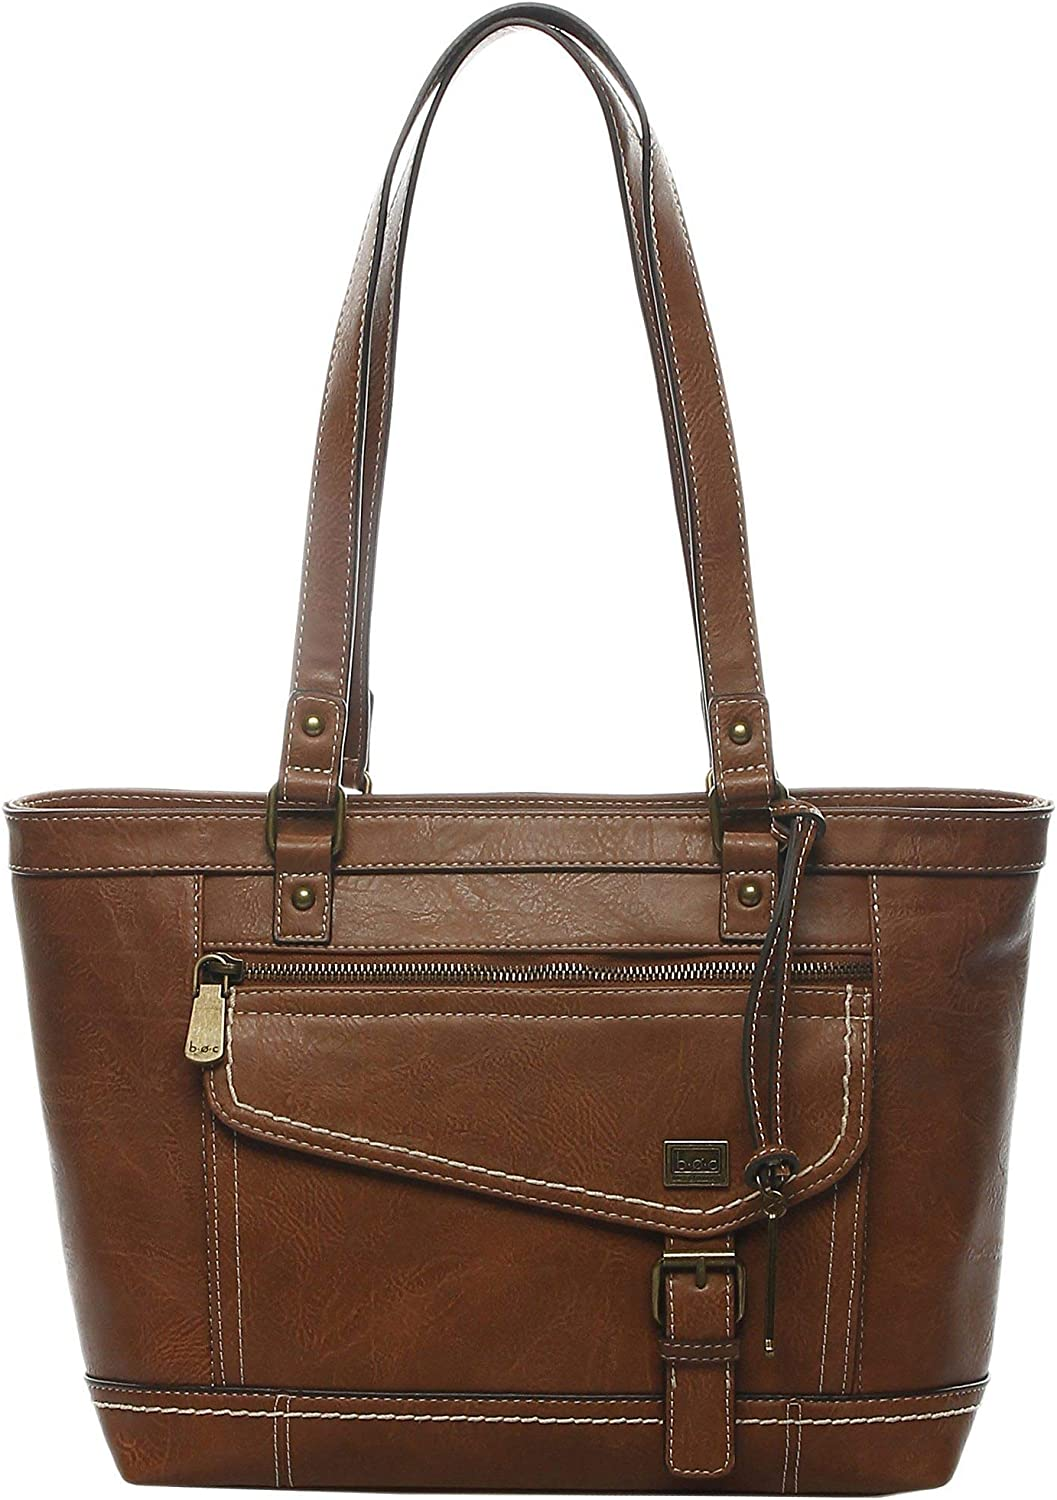 b.o.c. Amherst Tote 100% quality warranty Max 43% OFF